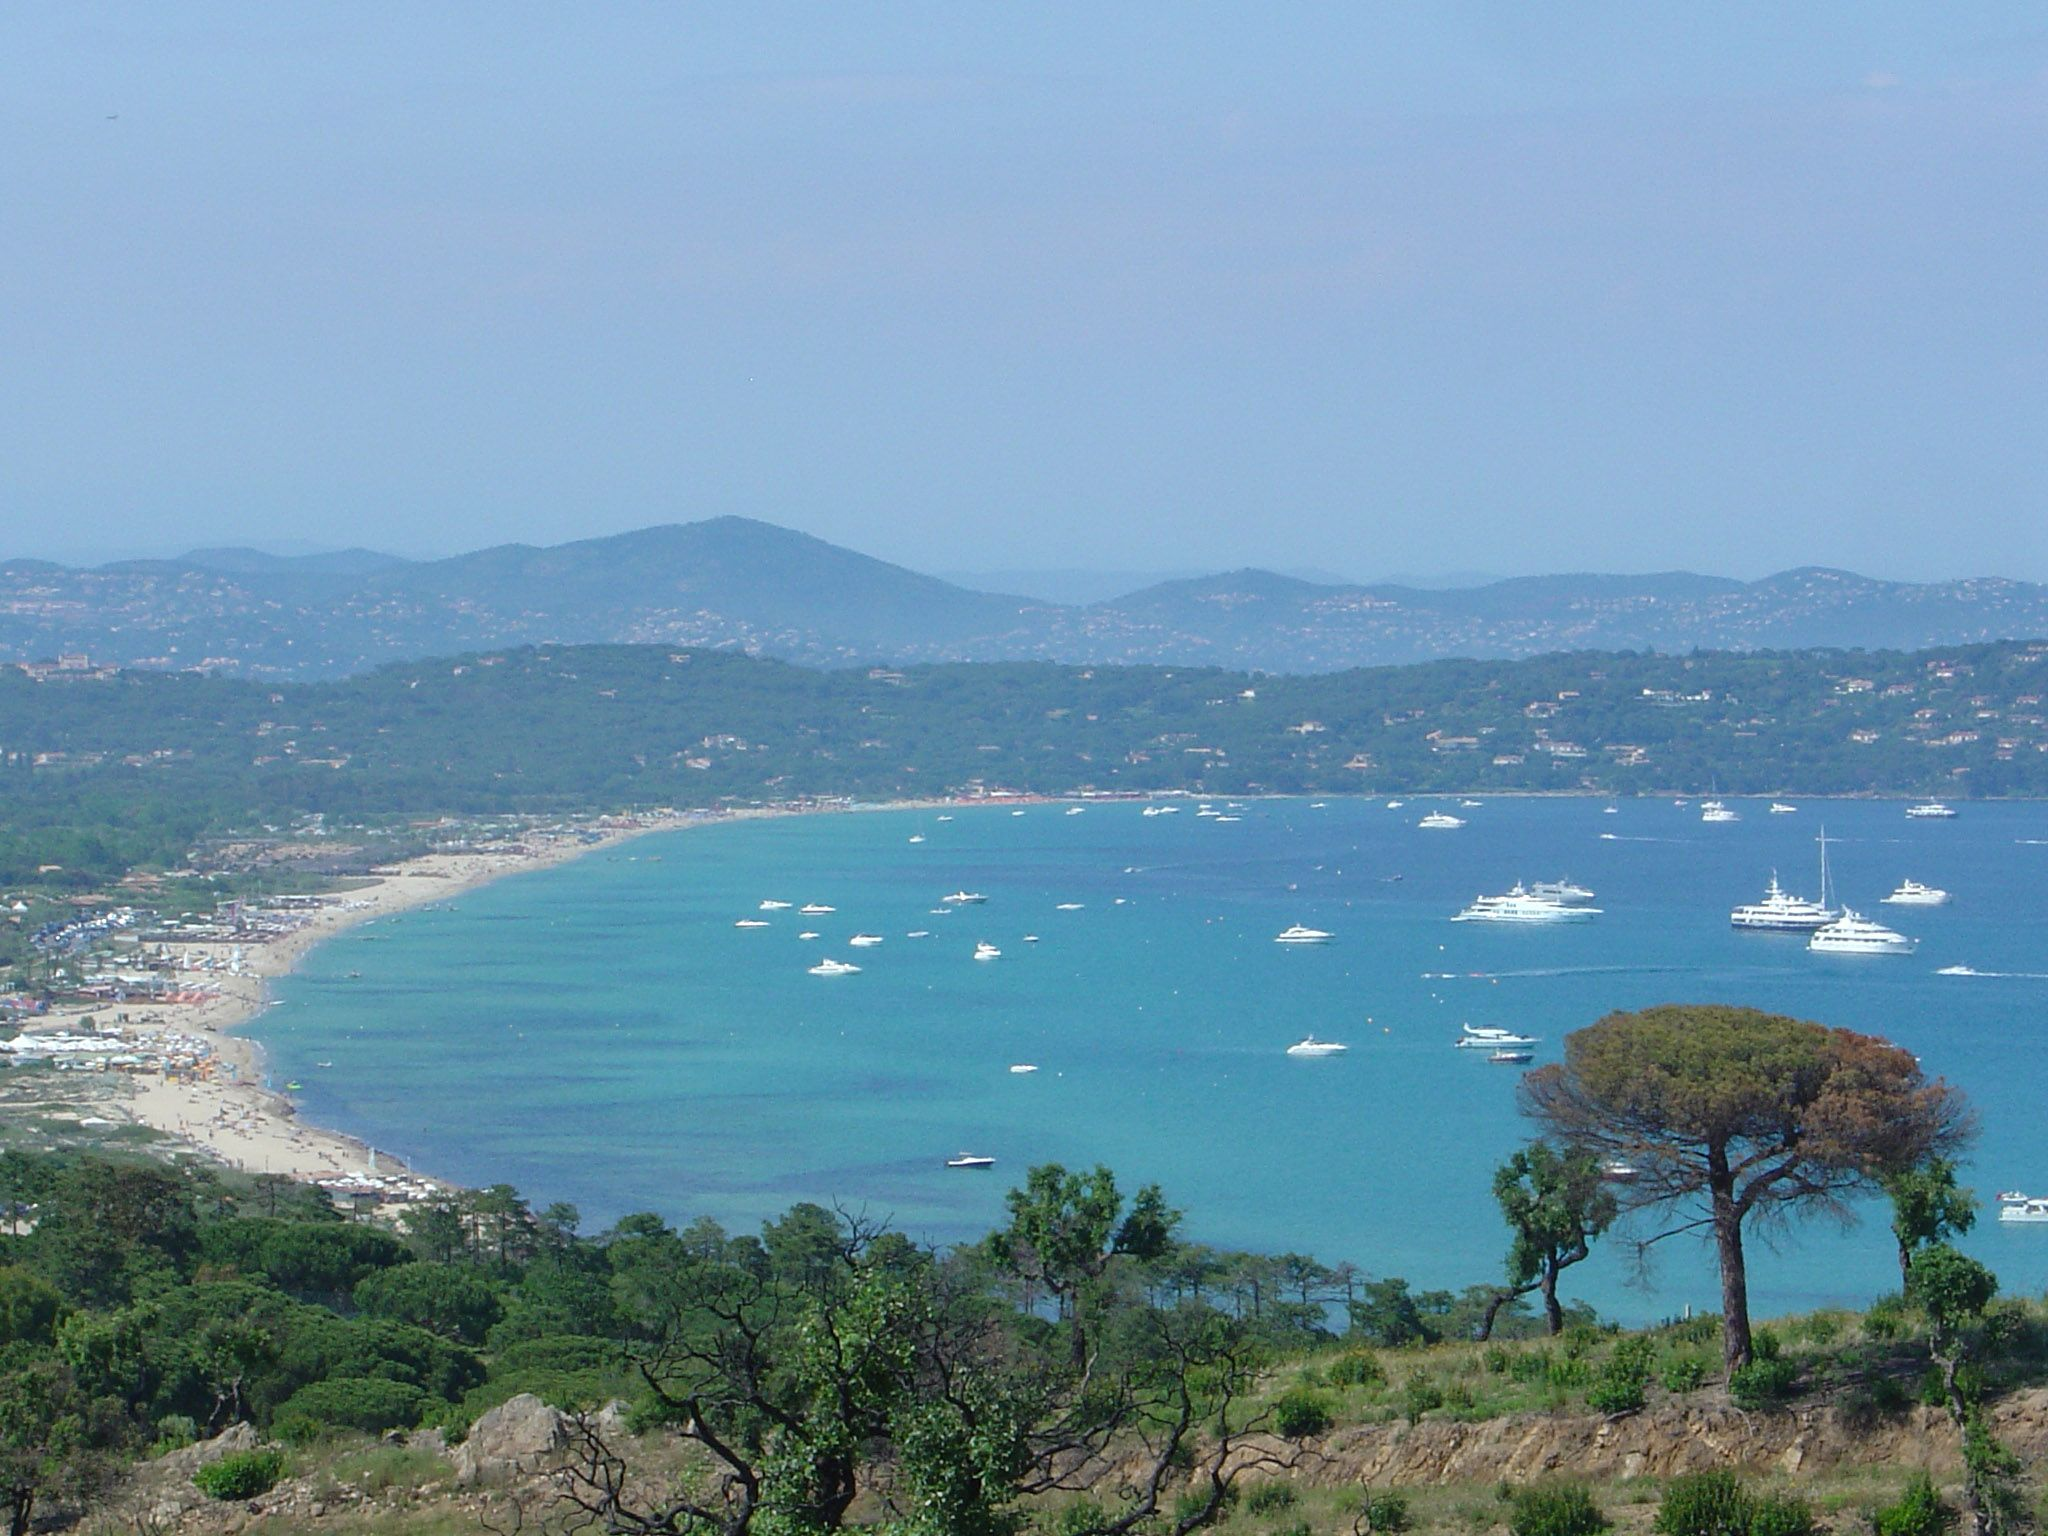 Plage De Pampelonne In St Topez Area Beaches In The World St Tropez France Beach